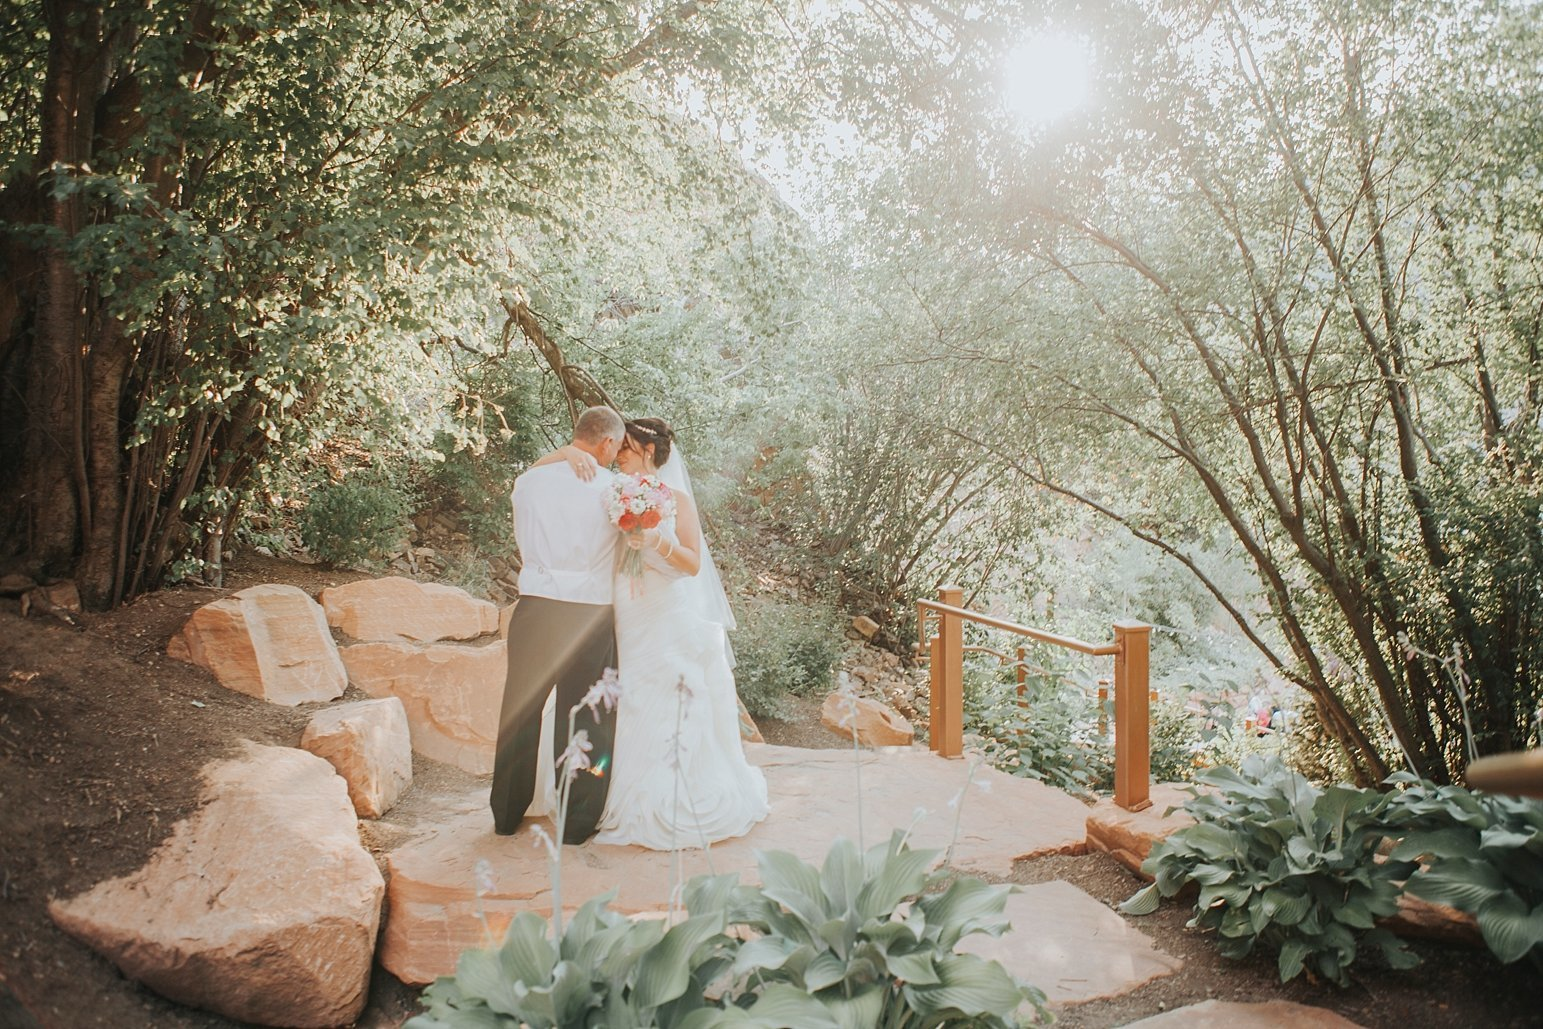 Salt Lake City Utah Wedding Portrait Photographer Wish Photography_0579